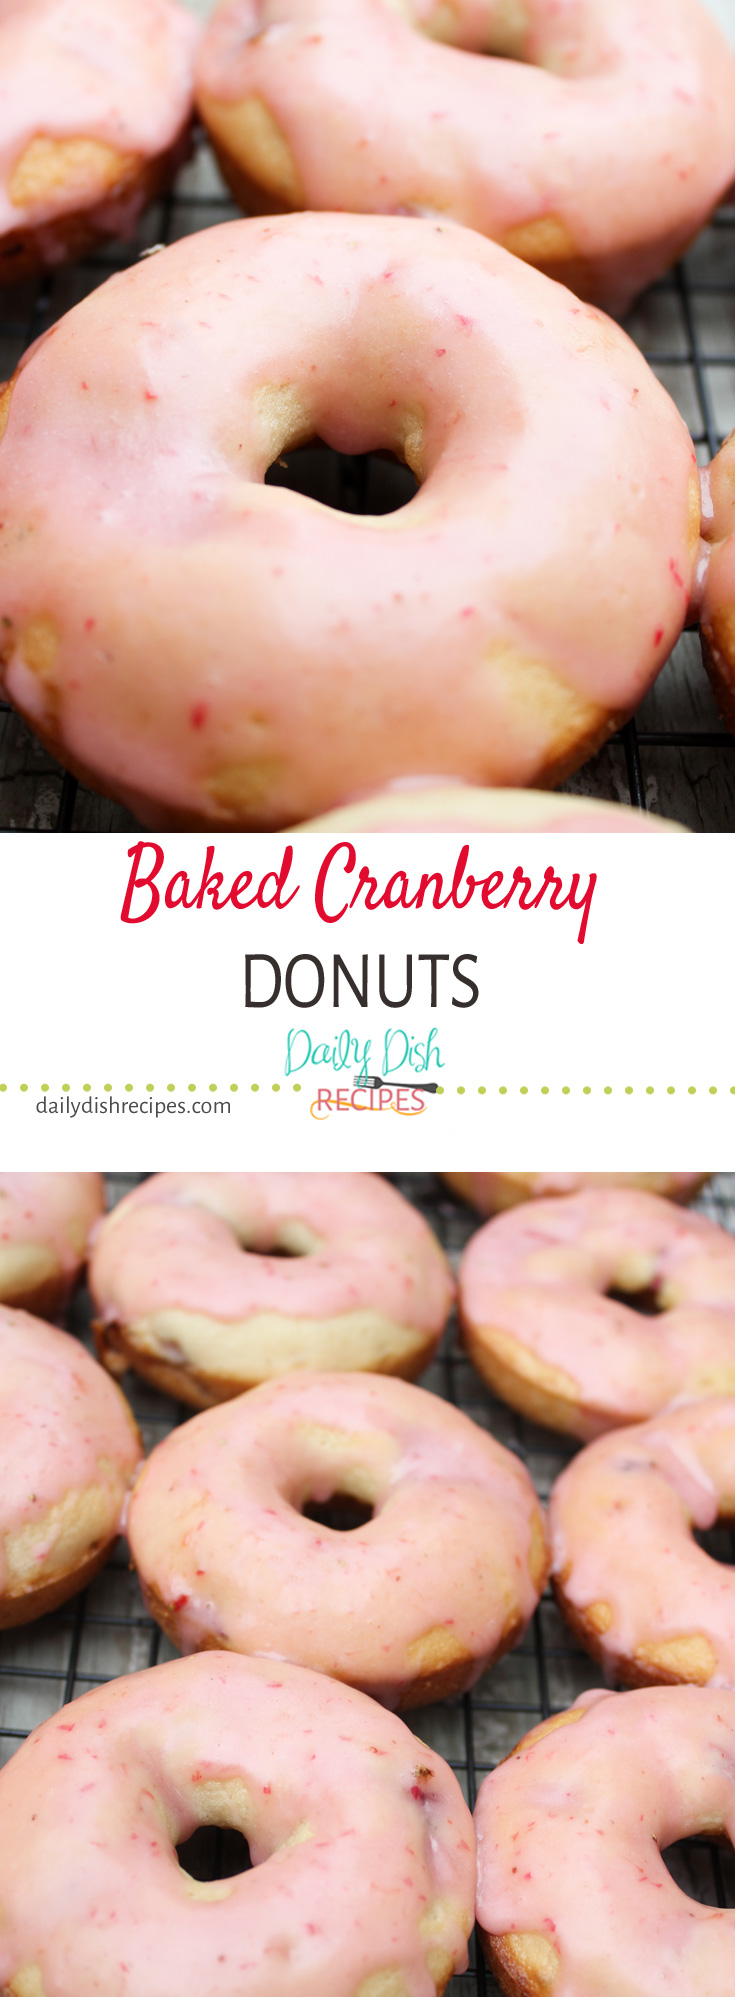 Baked Cranberry Donuts Pinterest